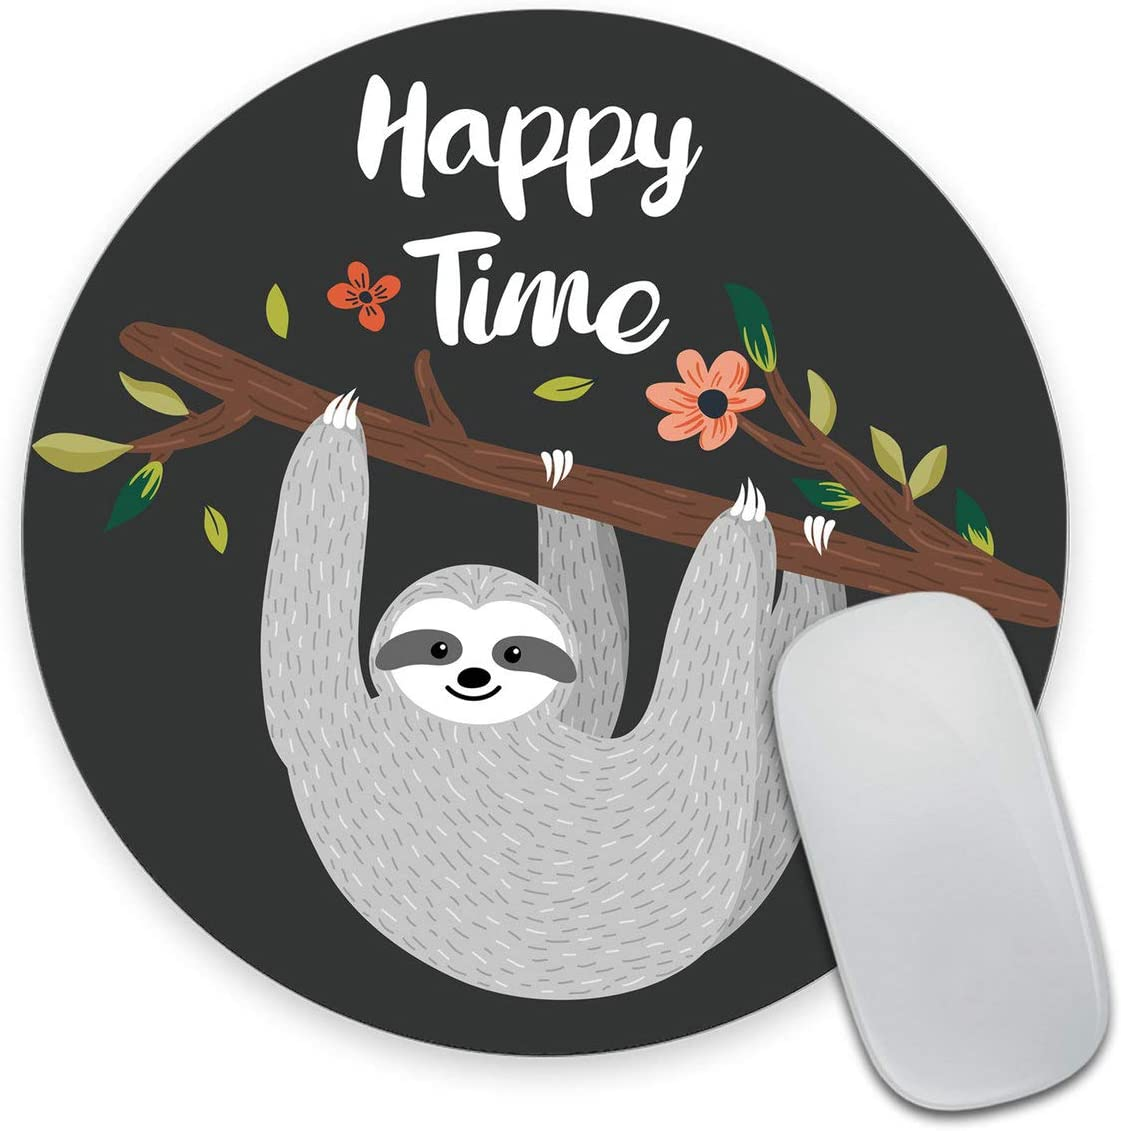 Amazon Com Smooffly Cute Baby Sloth Inspirational Quotes Round Mouse Pad Happy Time With Funny Sloth Hanging On The Tree Circular Mouse Pads Office Products